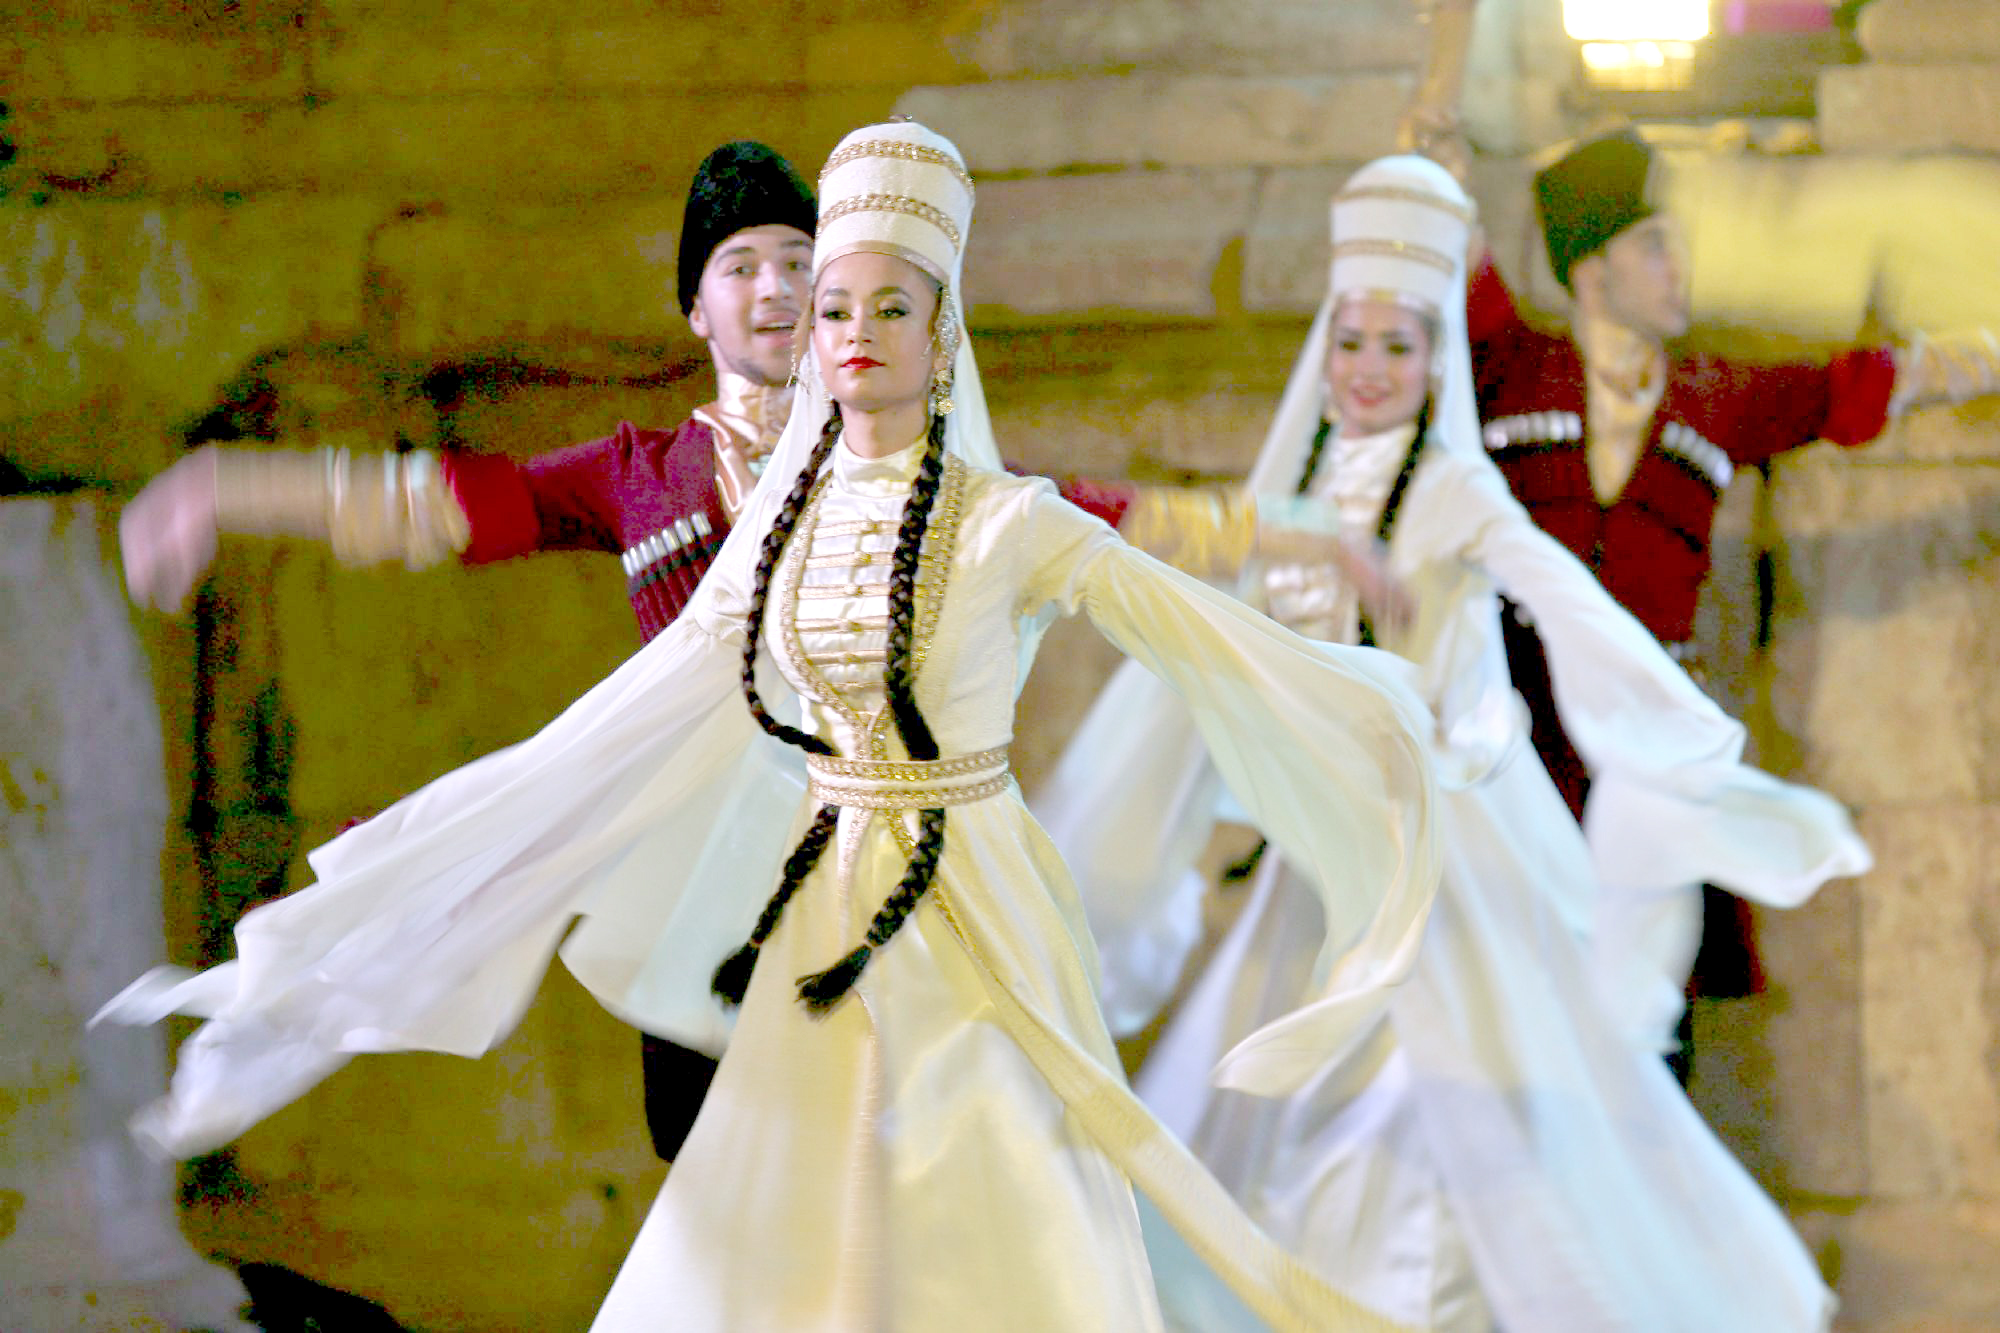 Exceptional atmosphere. A file picture shows dancers from Al-Jeel Al-Jadeed Circassian Folklore Dance Troupe performing at the Jerash Festival of Culture and Arts. (Reuters)